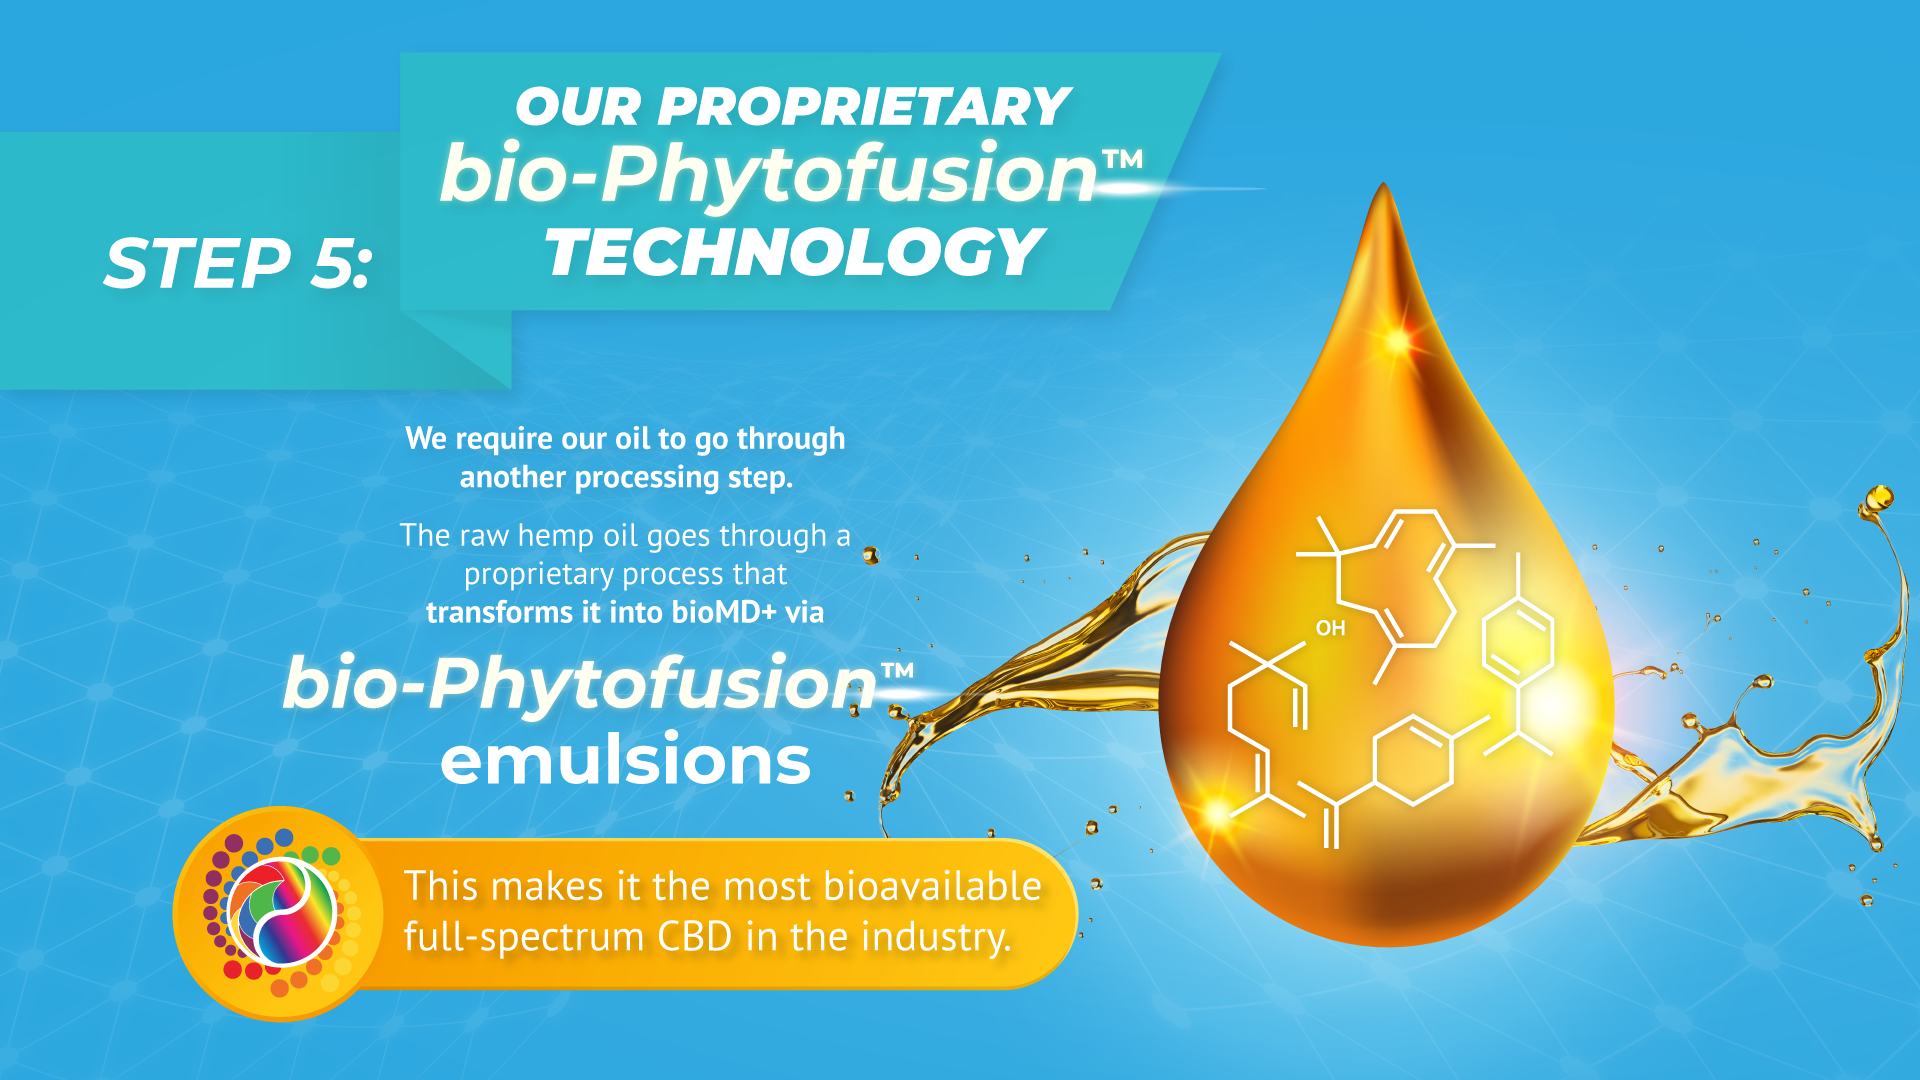 OUR PROPRIETARY bio-PhytoFusion™ TECHNOLOGY Our CBD oil require our oil to go through another processing step. The raw hemp oil goes through a proprietary process that transforms it into bioMD+ via bio-PhytoFusion emulsions. This makes it the most bioavailable full-spectrum CBD in the industry.